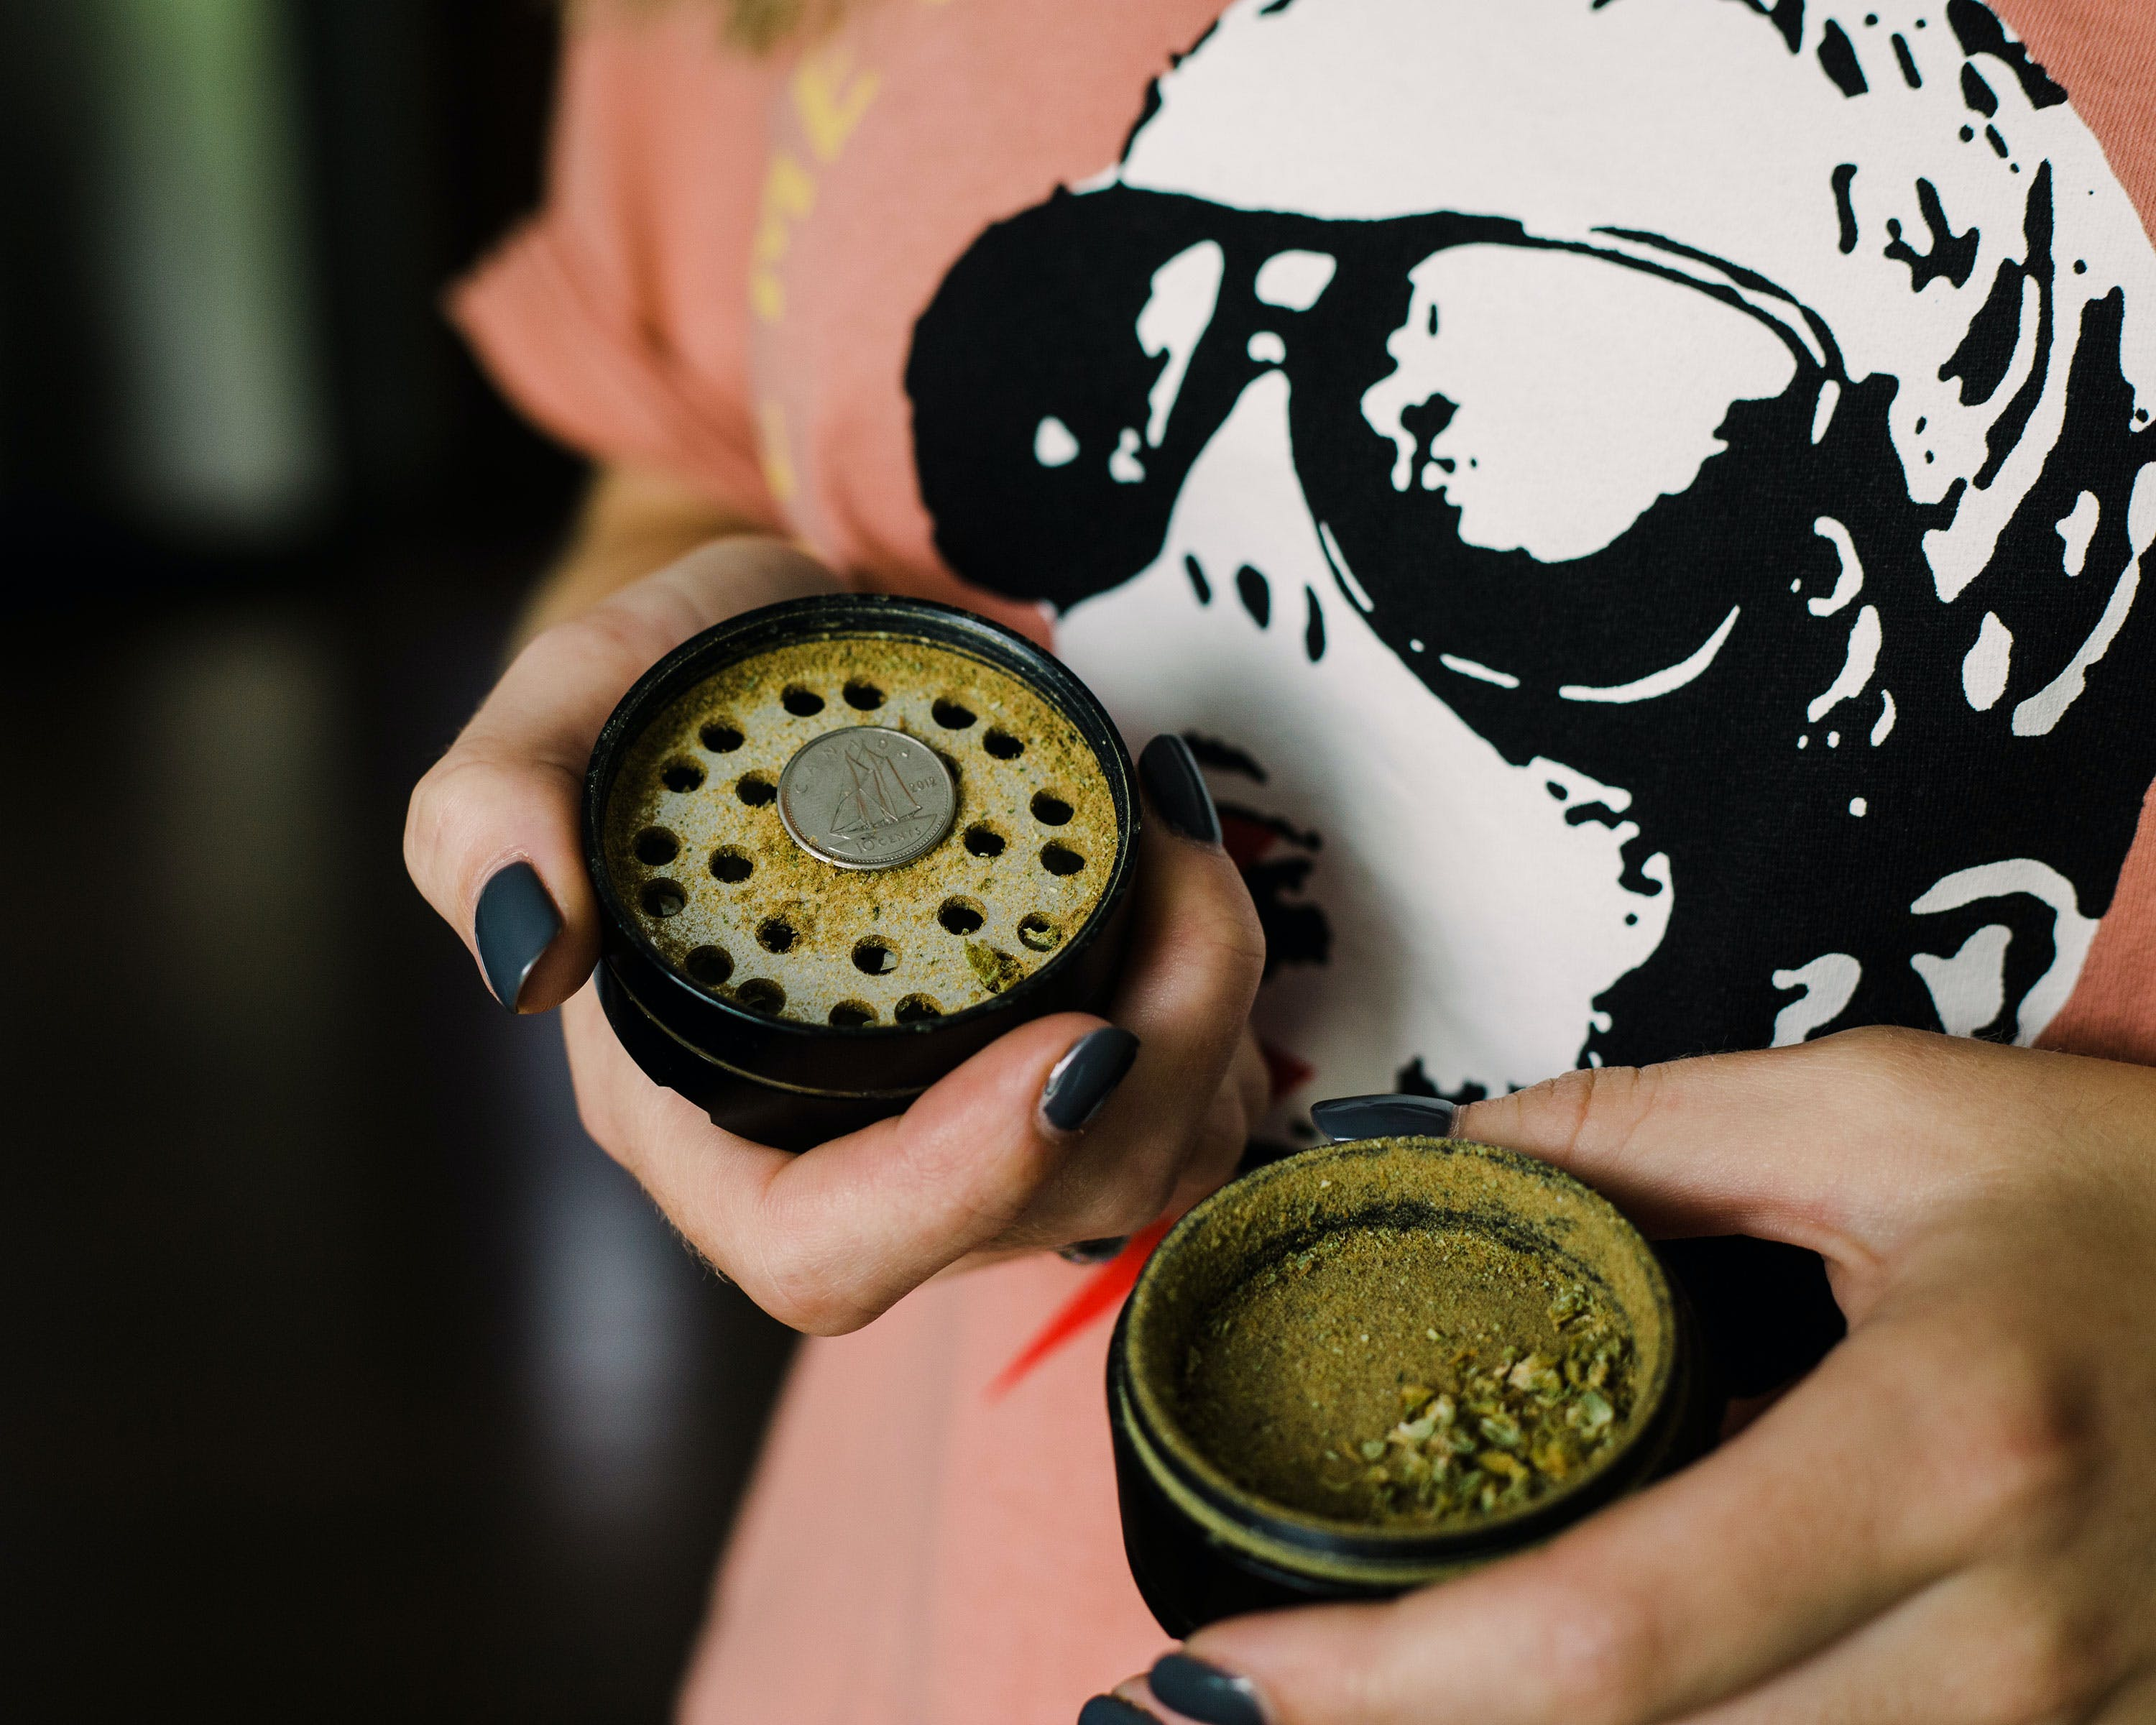 Heres The Foolproof Method To Getting Maximum Kief From Your Grinder Heres The Foolproof Method To Getting Maximum Kief From Your Grinder